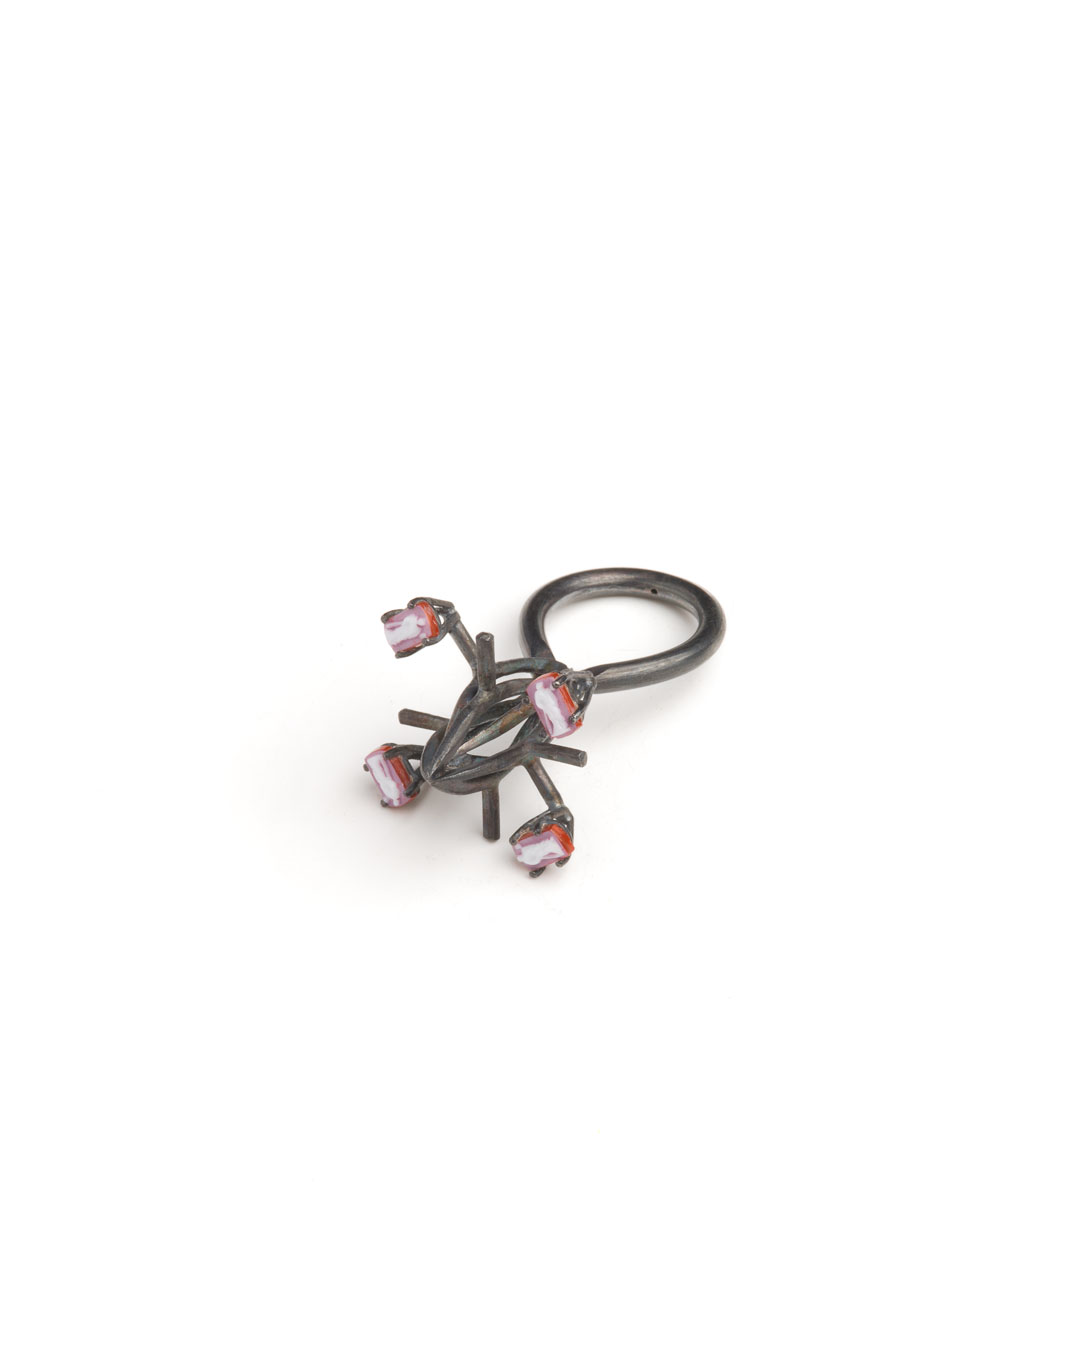 Winfried Krüger, untitled, 1997, necklace, ring; oxidised silver, stones, 150 x 150 mm, 50 x 25 mm, €1940 (image 2 of 2 - ring)